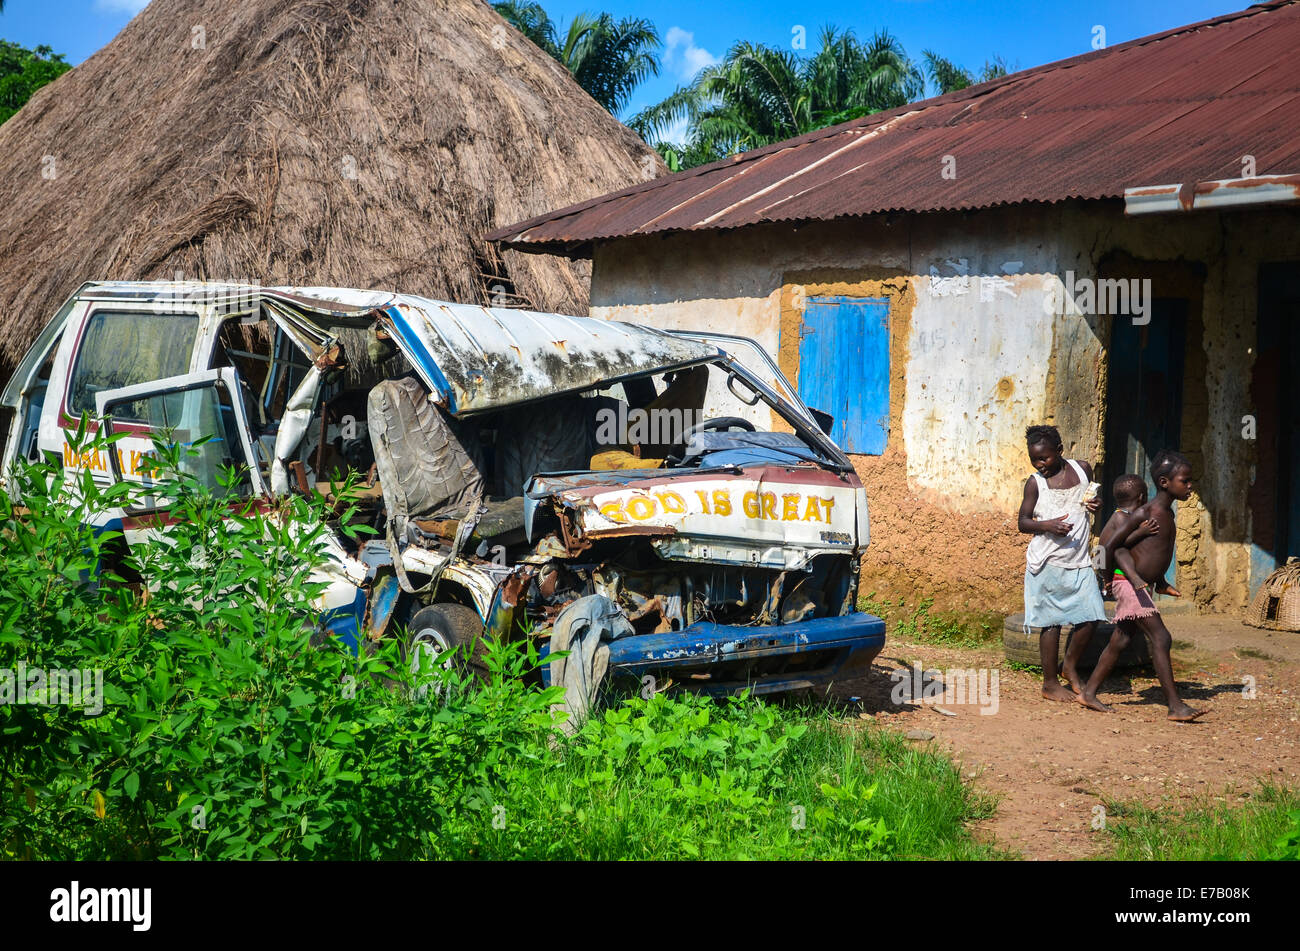 Wrecked minibus reading 'GOD IS GREAT' on the roads of Sierra Leone, Africa - Stock Image